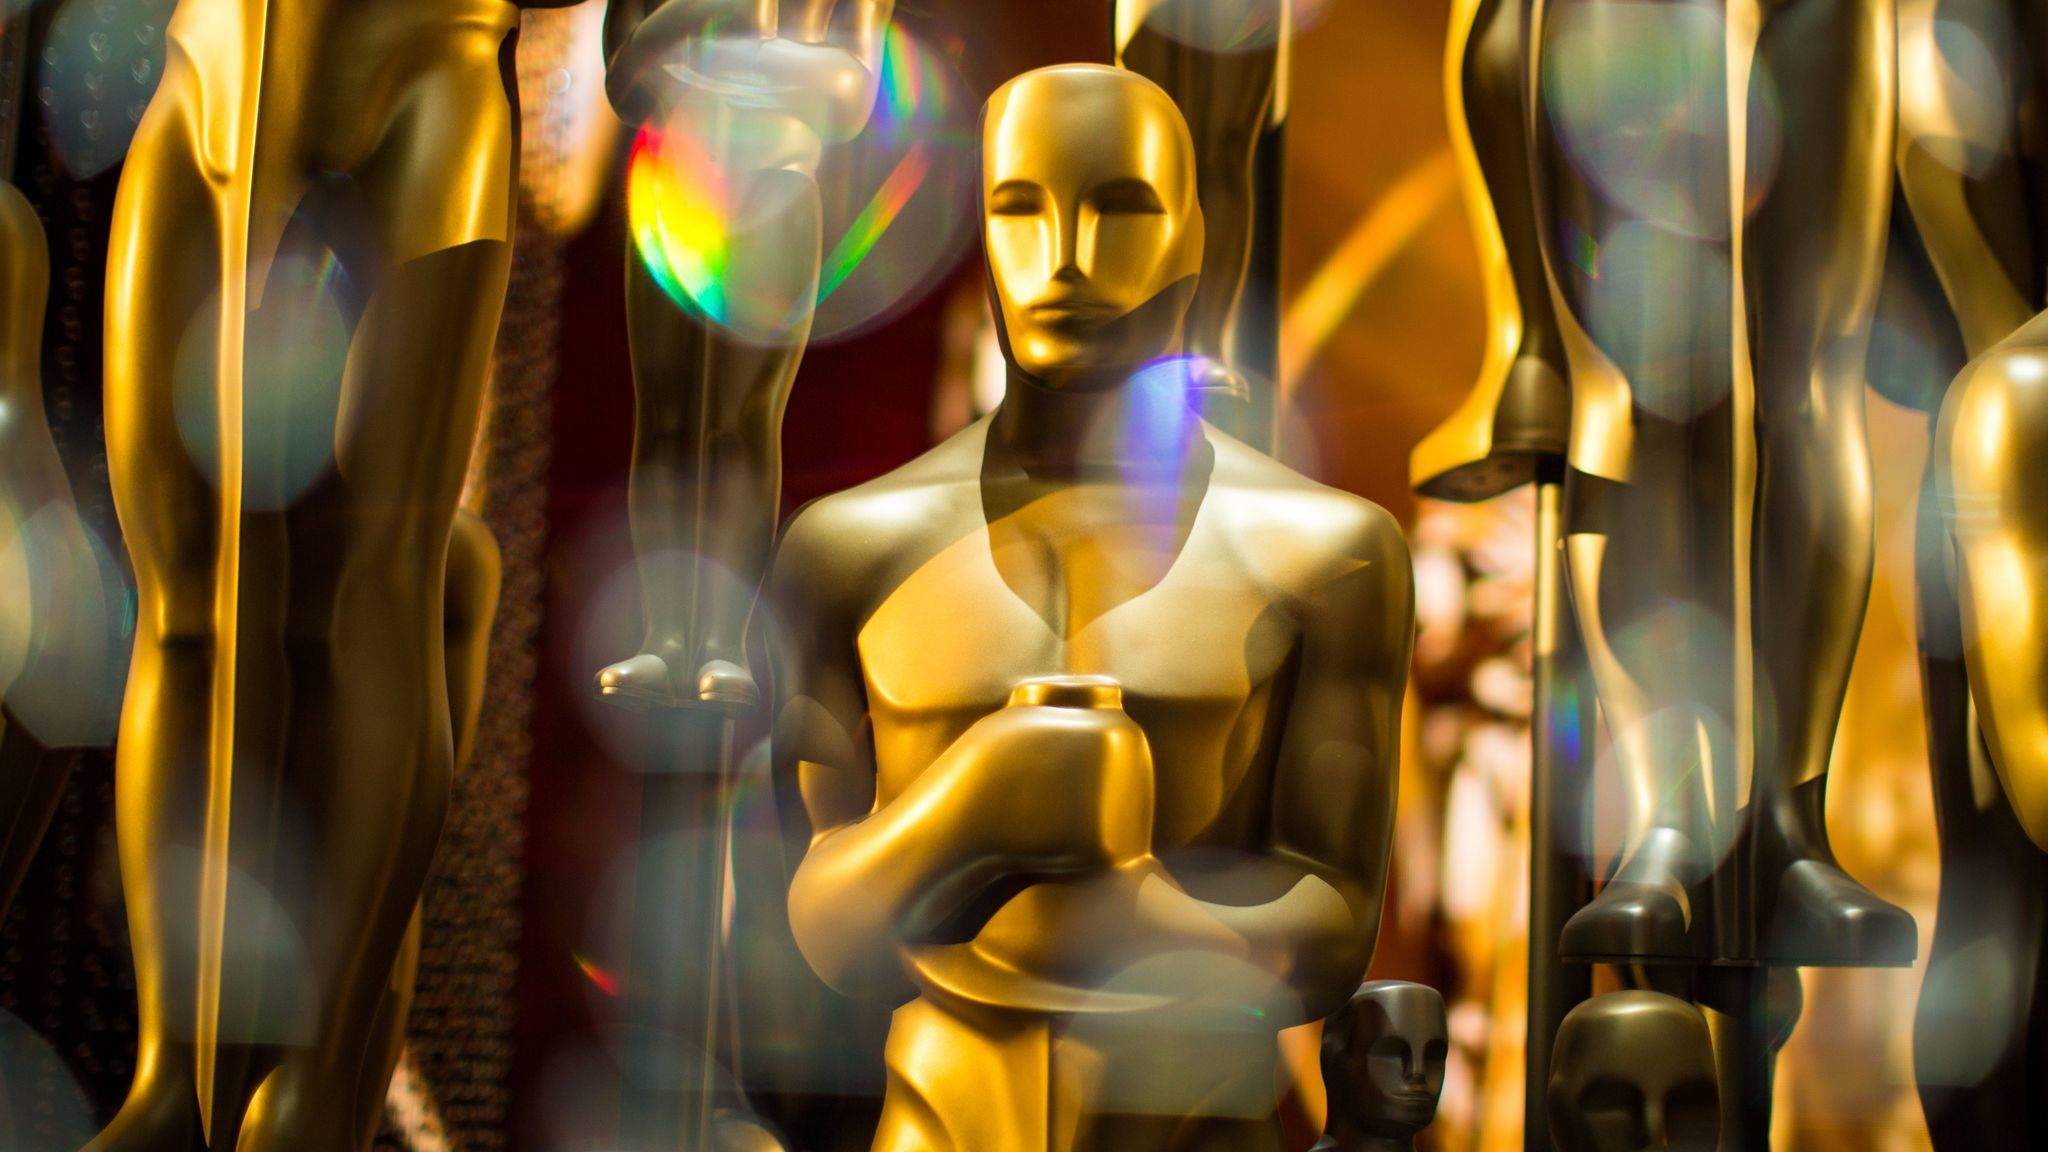 Oscar statues backstage at the 88th Academy Awards in 2016. (Christopher Polk / Getty Images)